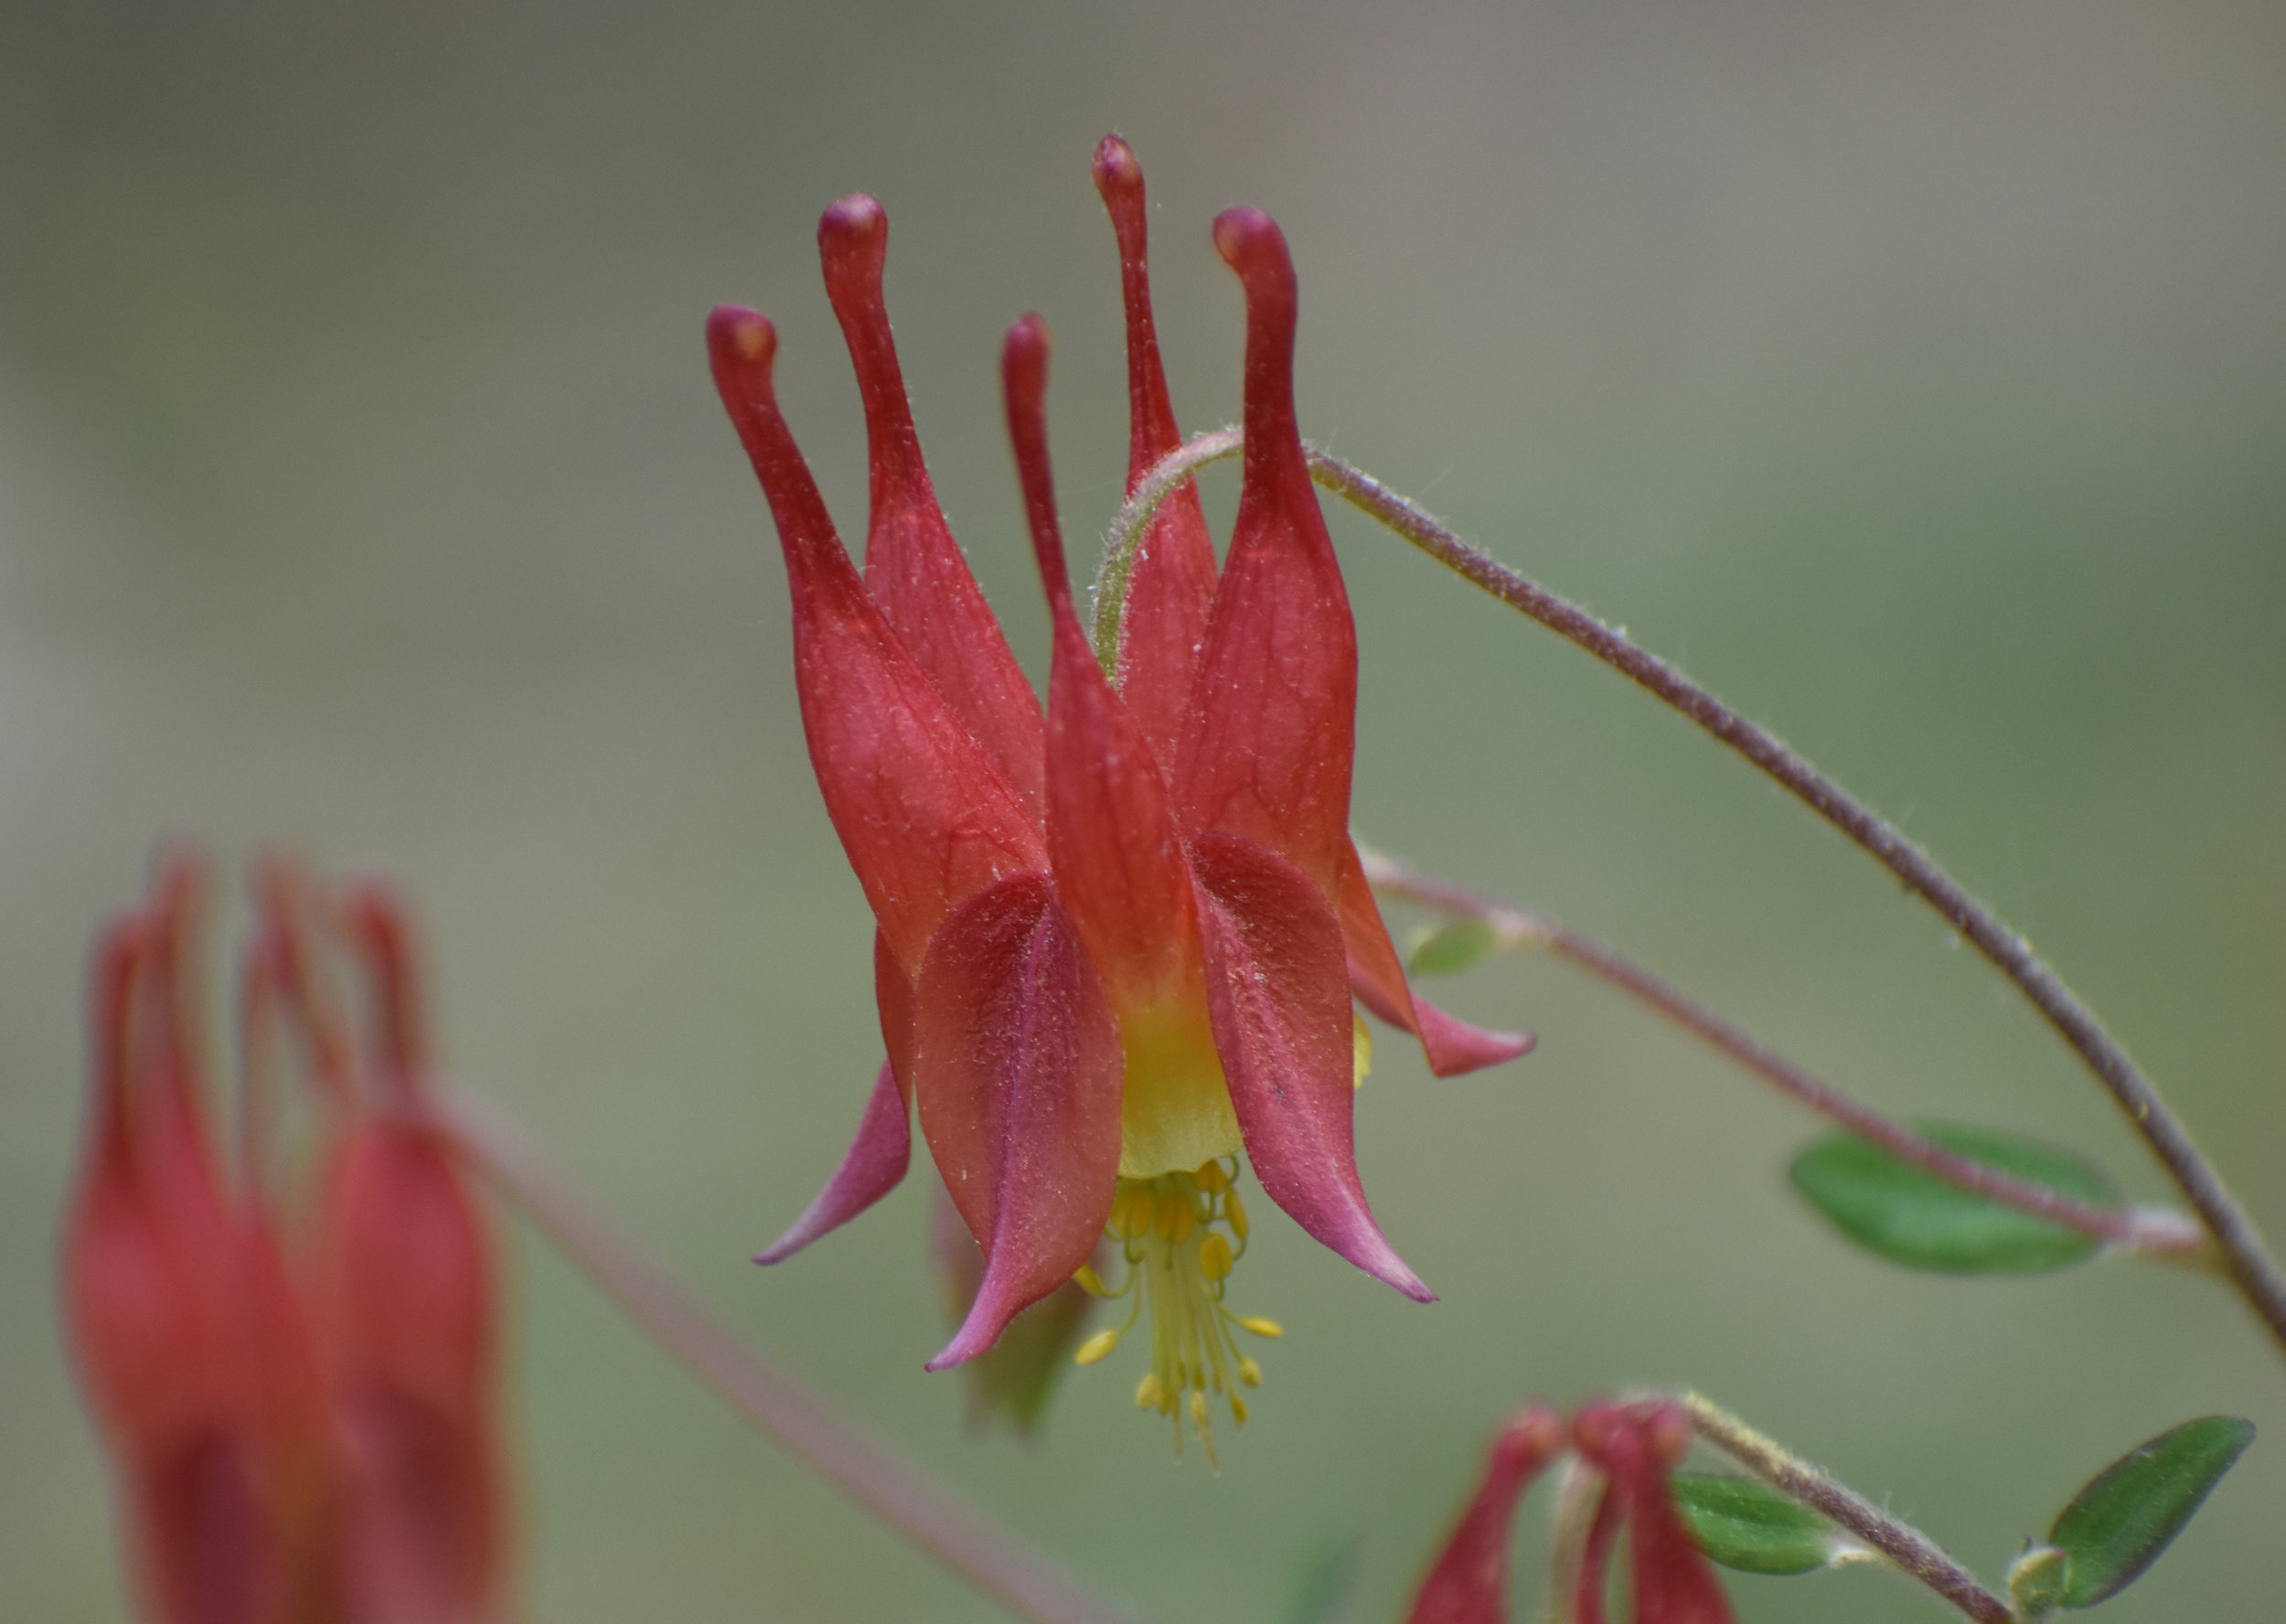 Red Columbine is a red flower that attracts hummingbirds